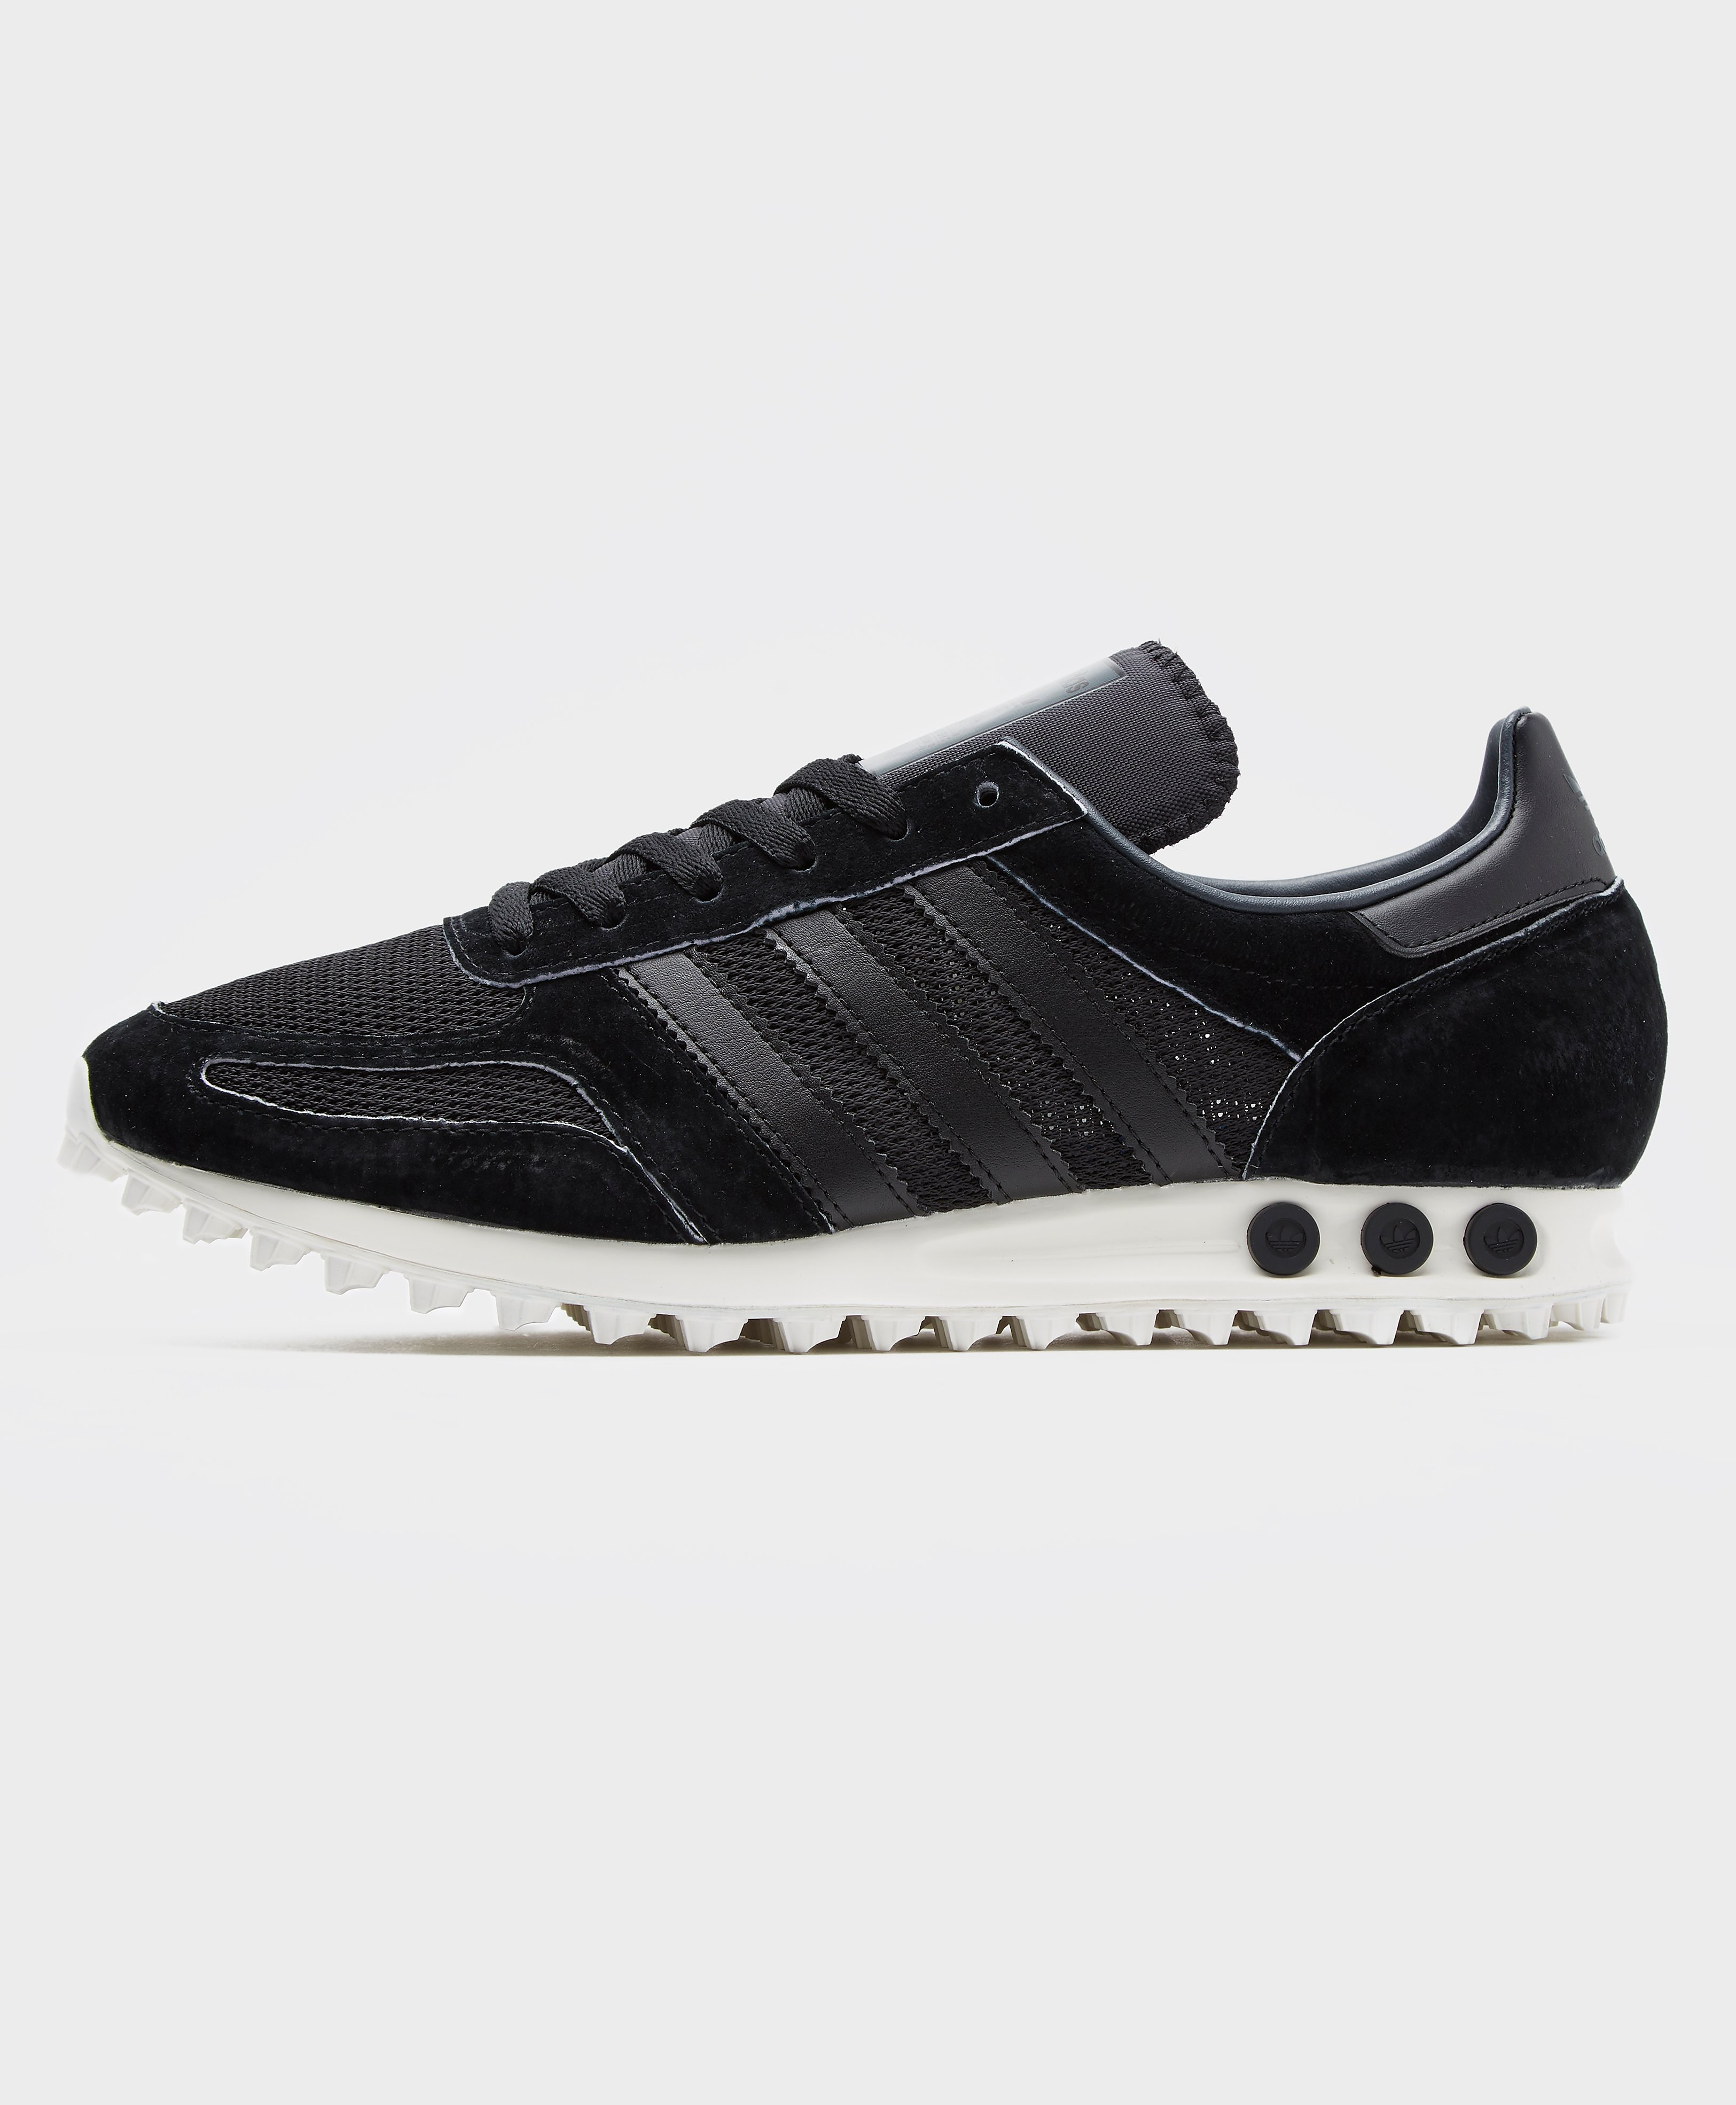 adidas Originals L.A Trainer